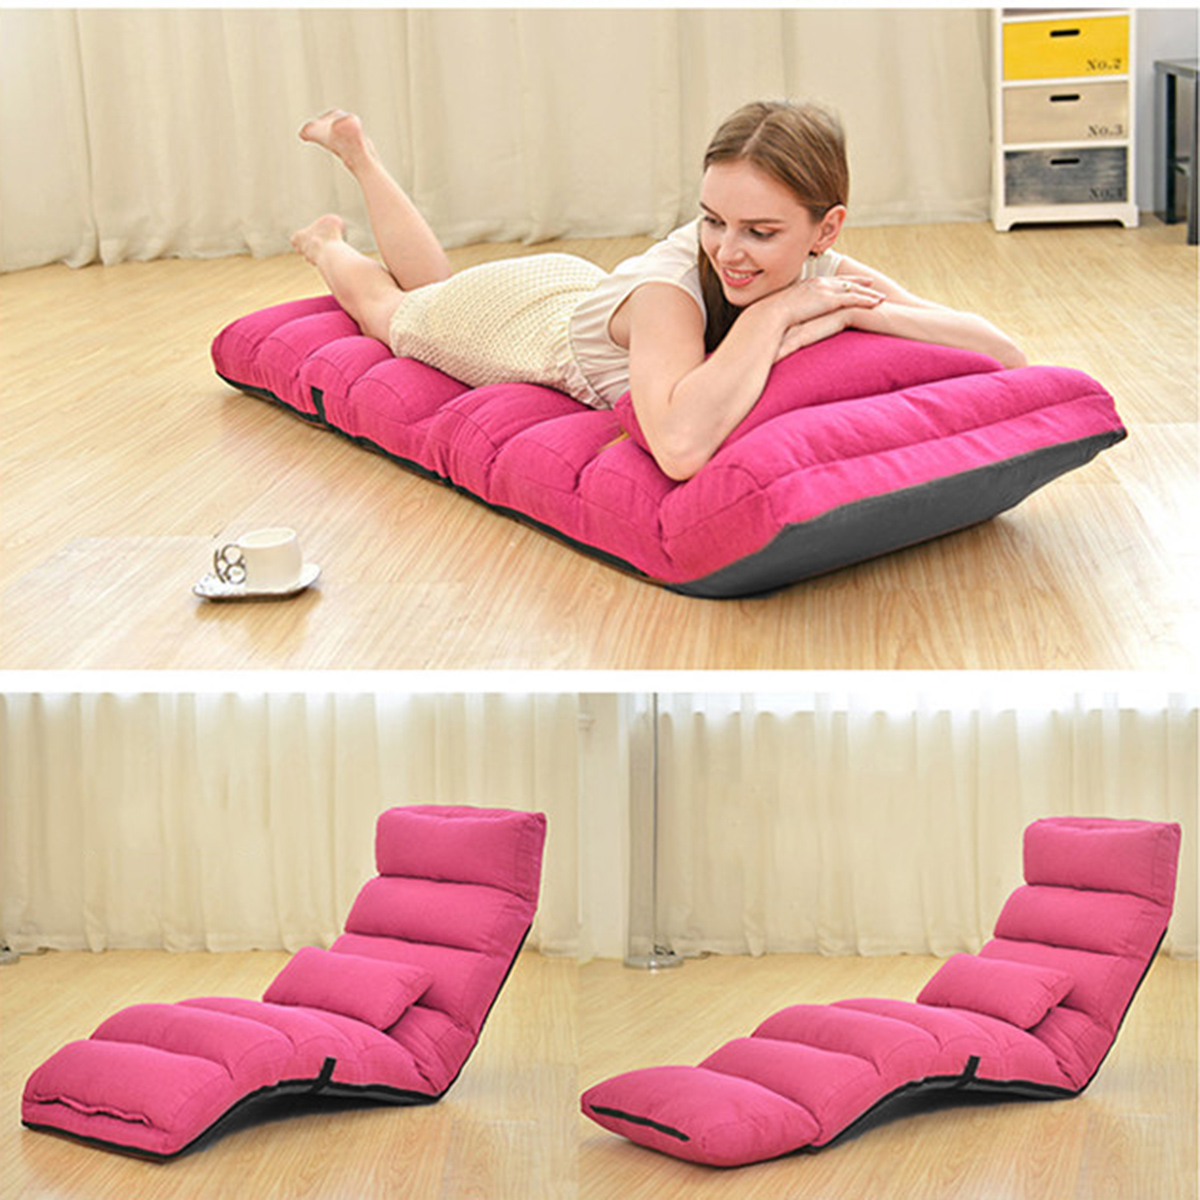 205 175cm removable foldable lazy sofa chair sofa couch bed lounge rh ebay com